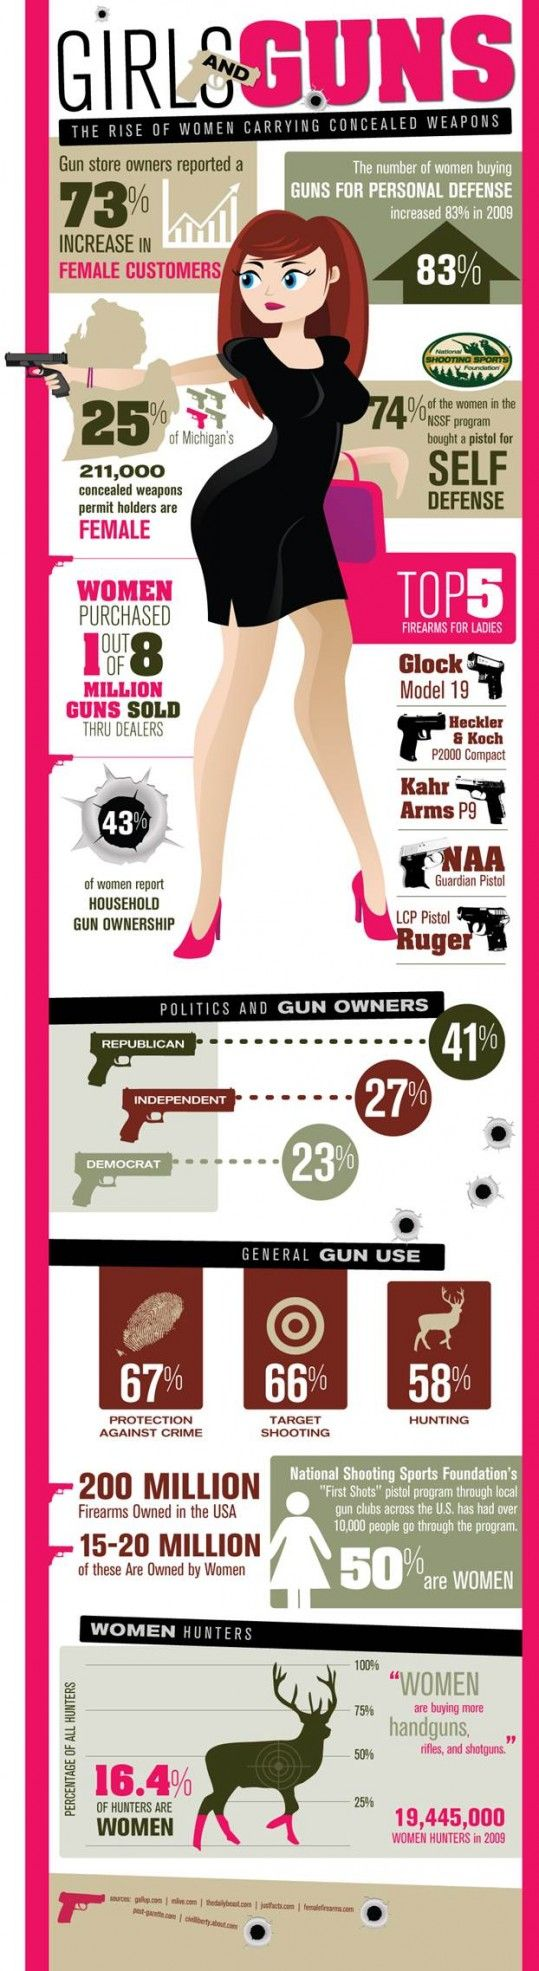 """""""Girls & Guns - 'The rise of women carrying concealed weapons'""""   Millions of women are becoming avid sportswomen, discovering the joy of target shooting, and are refusing to ever become a helpless victim.  Statistics and percentages of women who are concealed-carrying, hunting, & target shooting. Top 5 firearms for ladies.  Women we hear you roar!"""